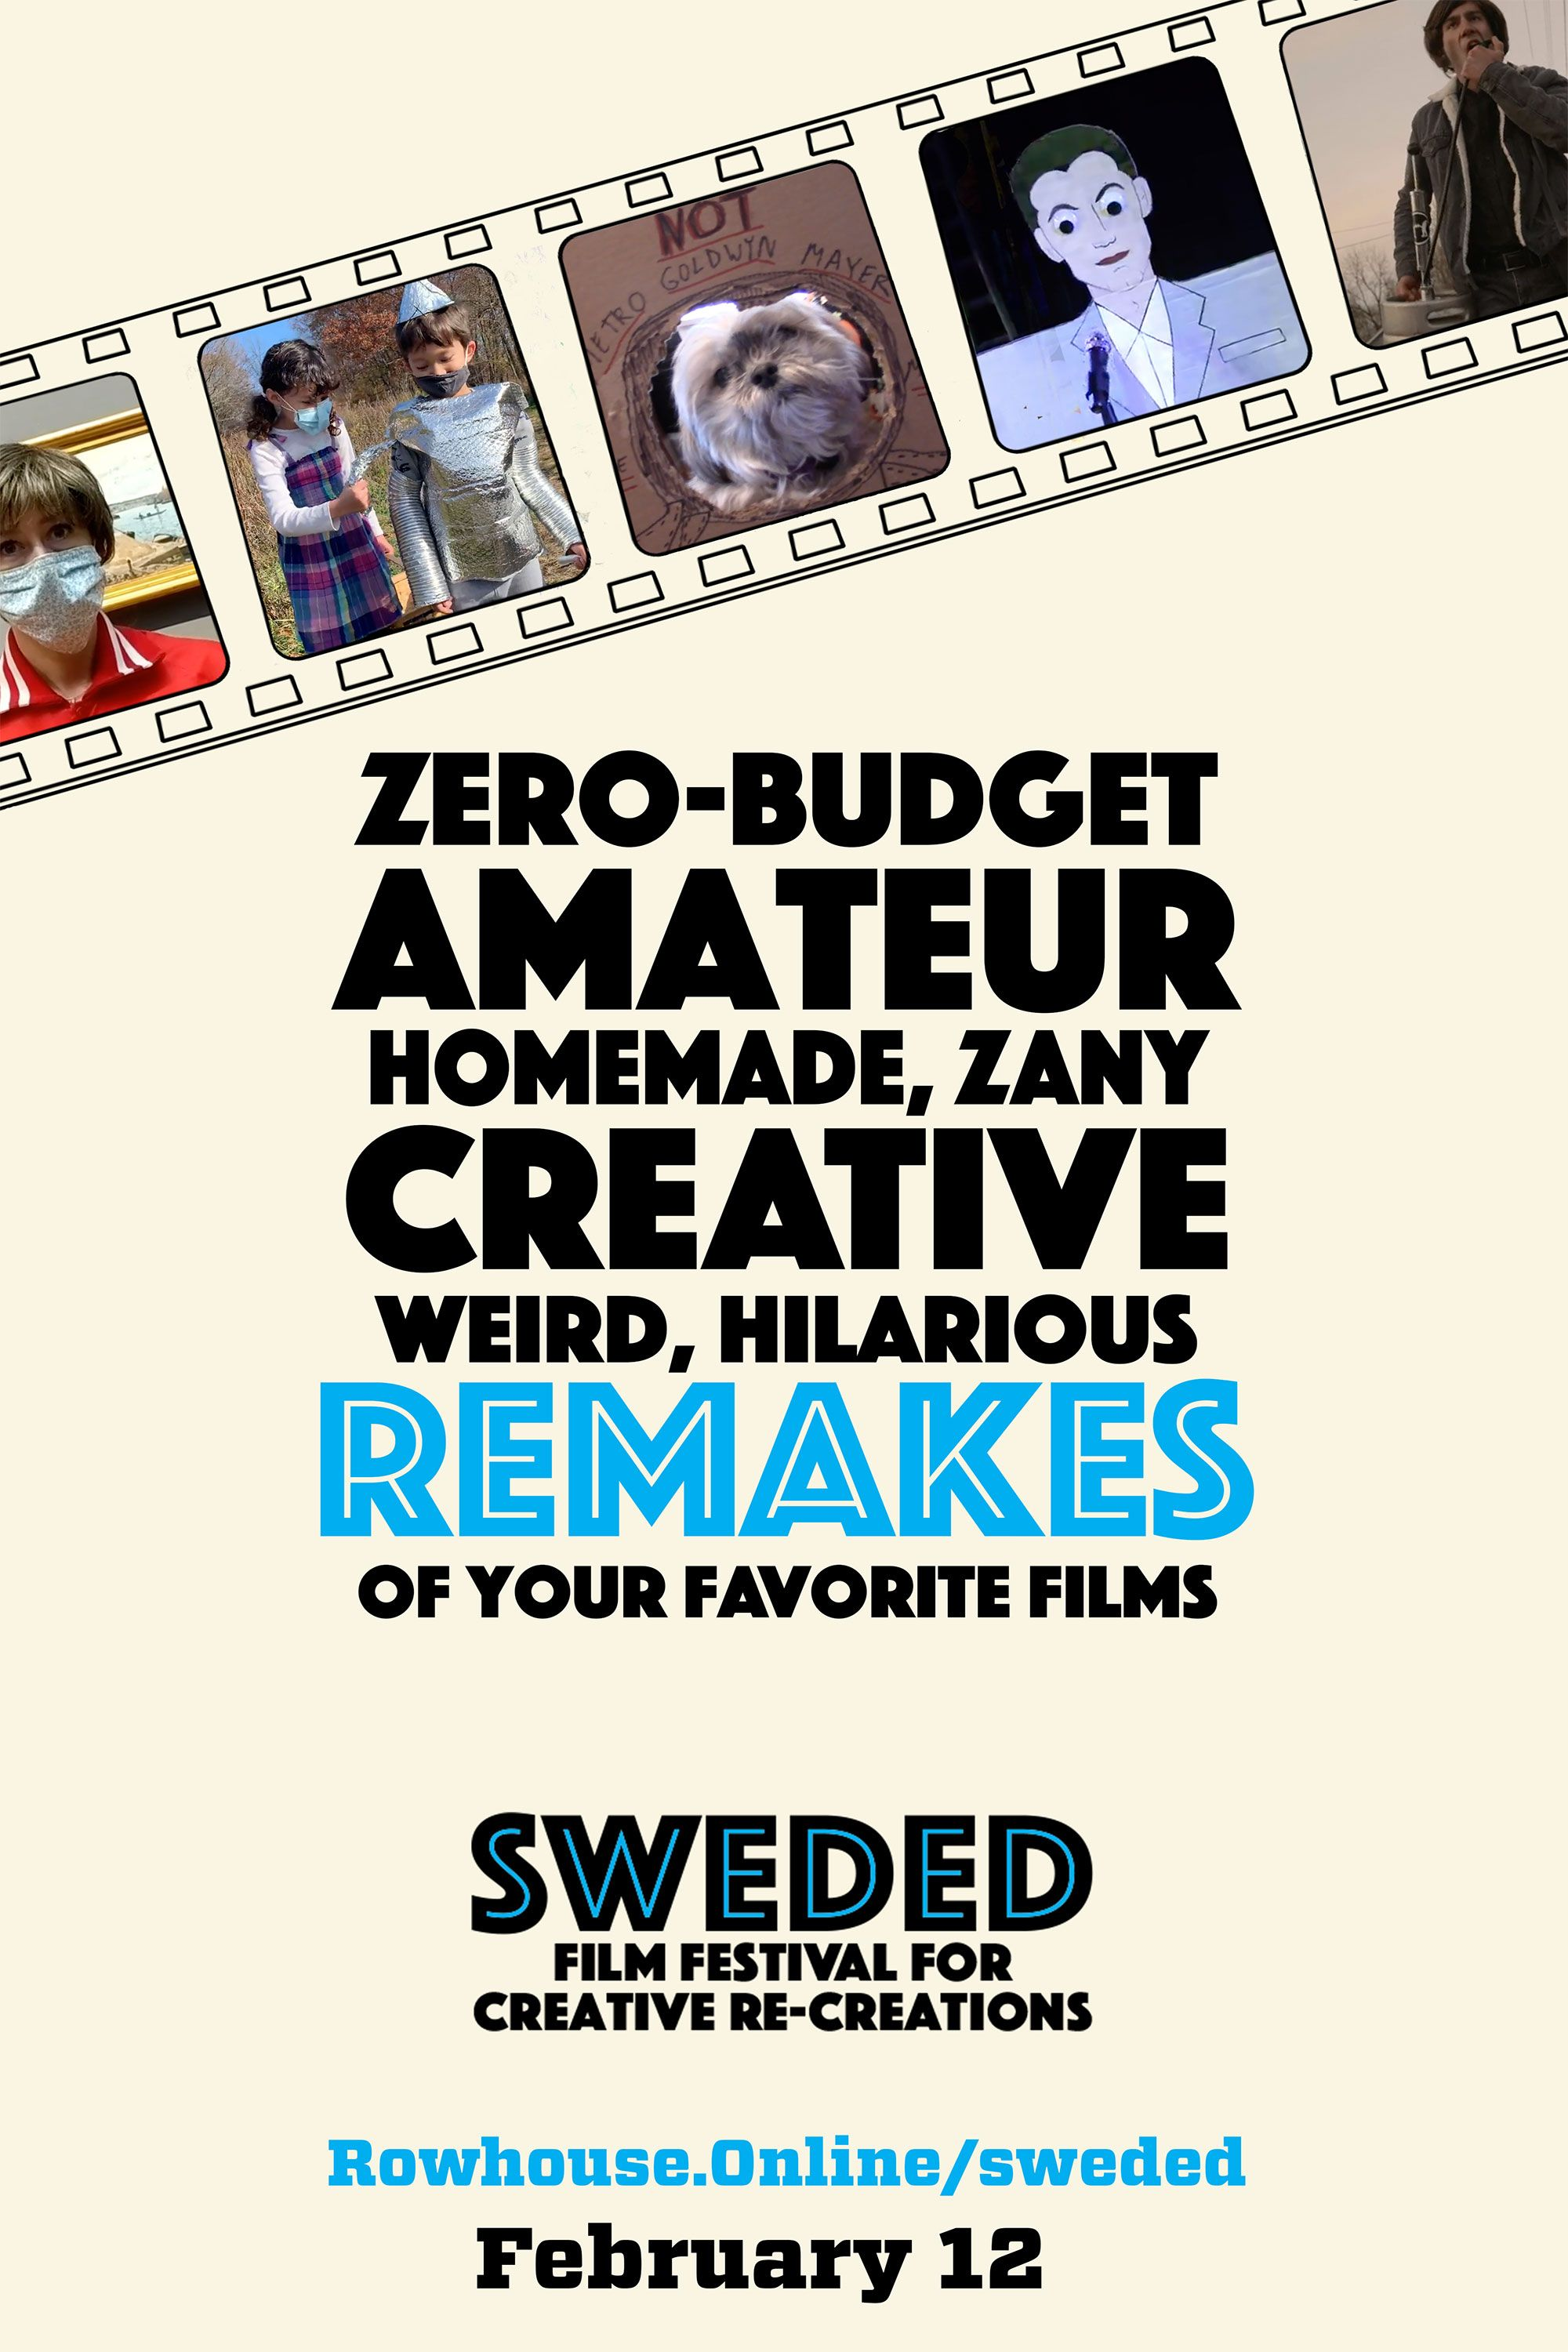 Sweeded poster